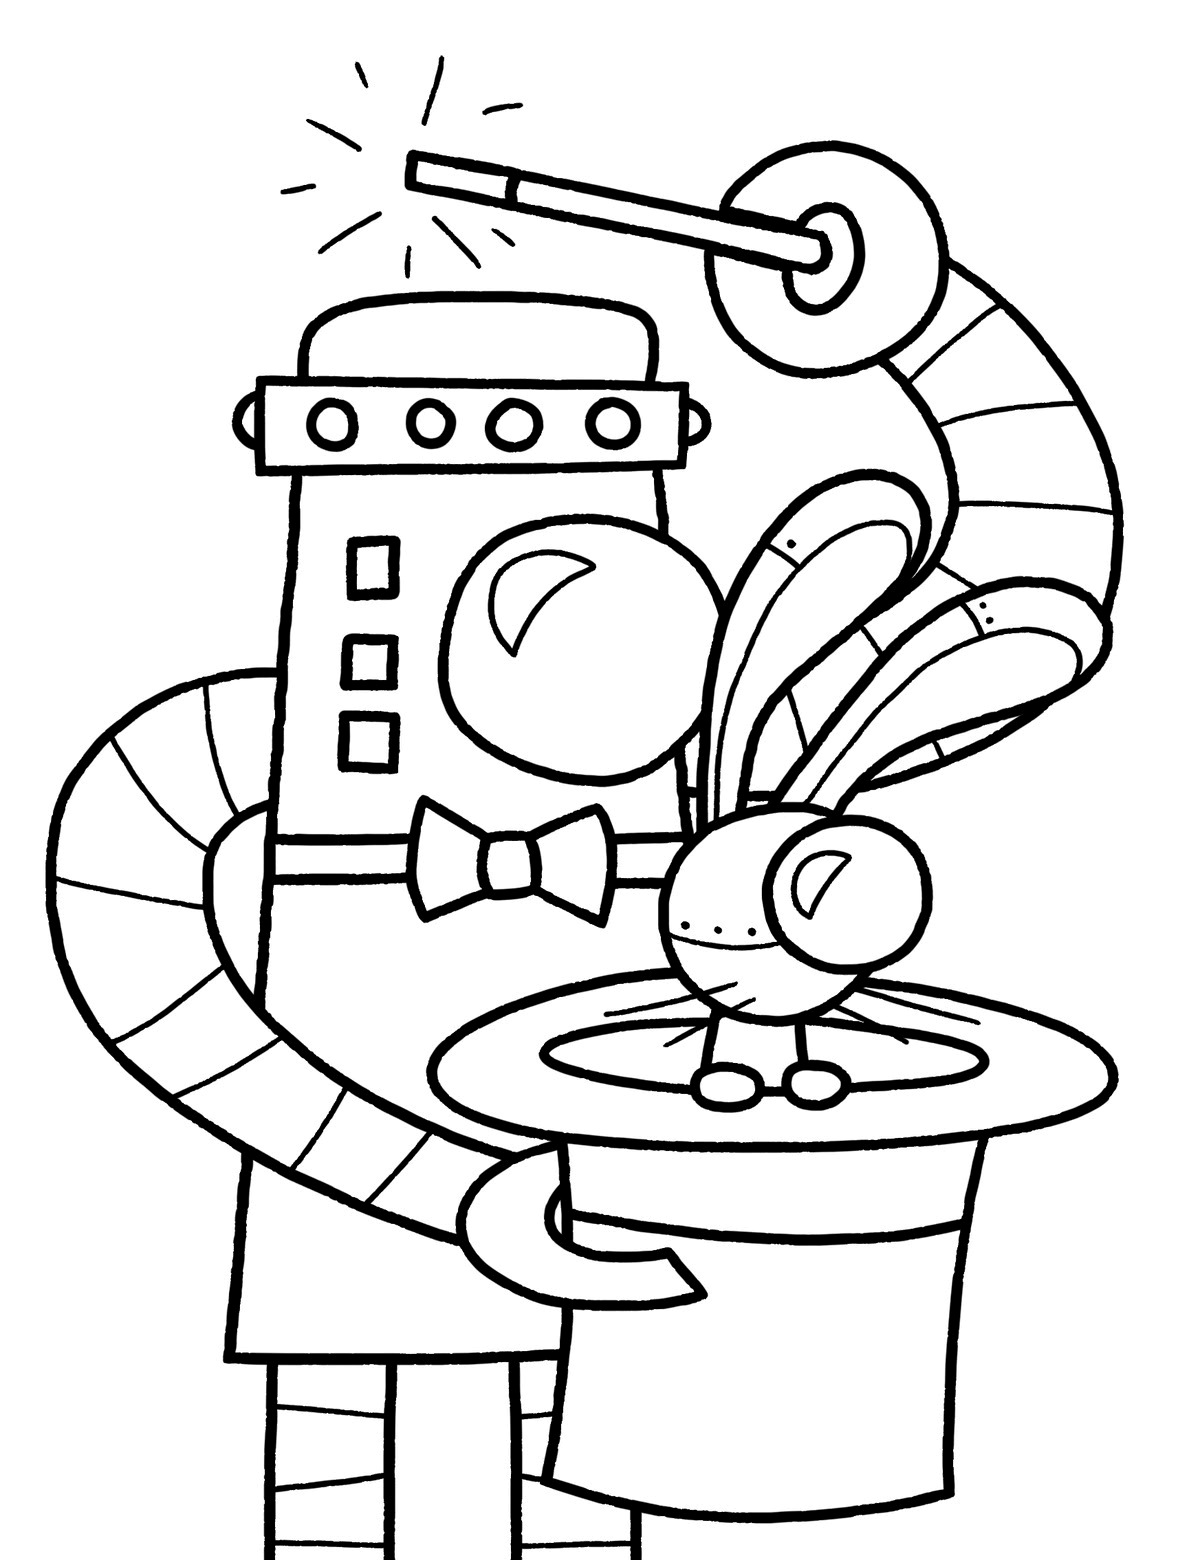 coloring robot pages free printable robot coloring pages for kids cool2bkids pages coloring robot